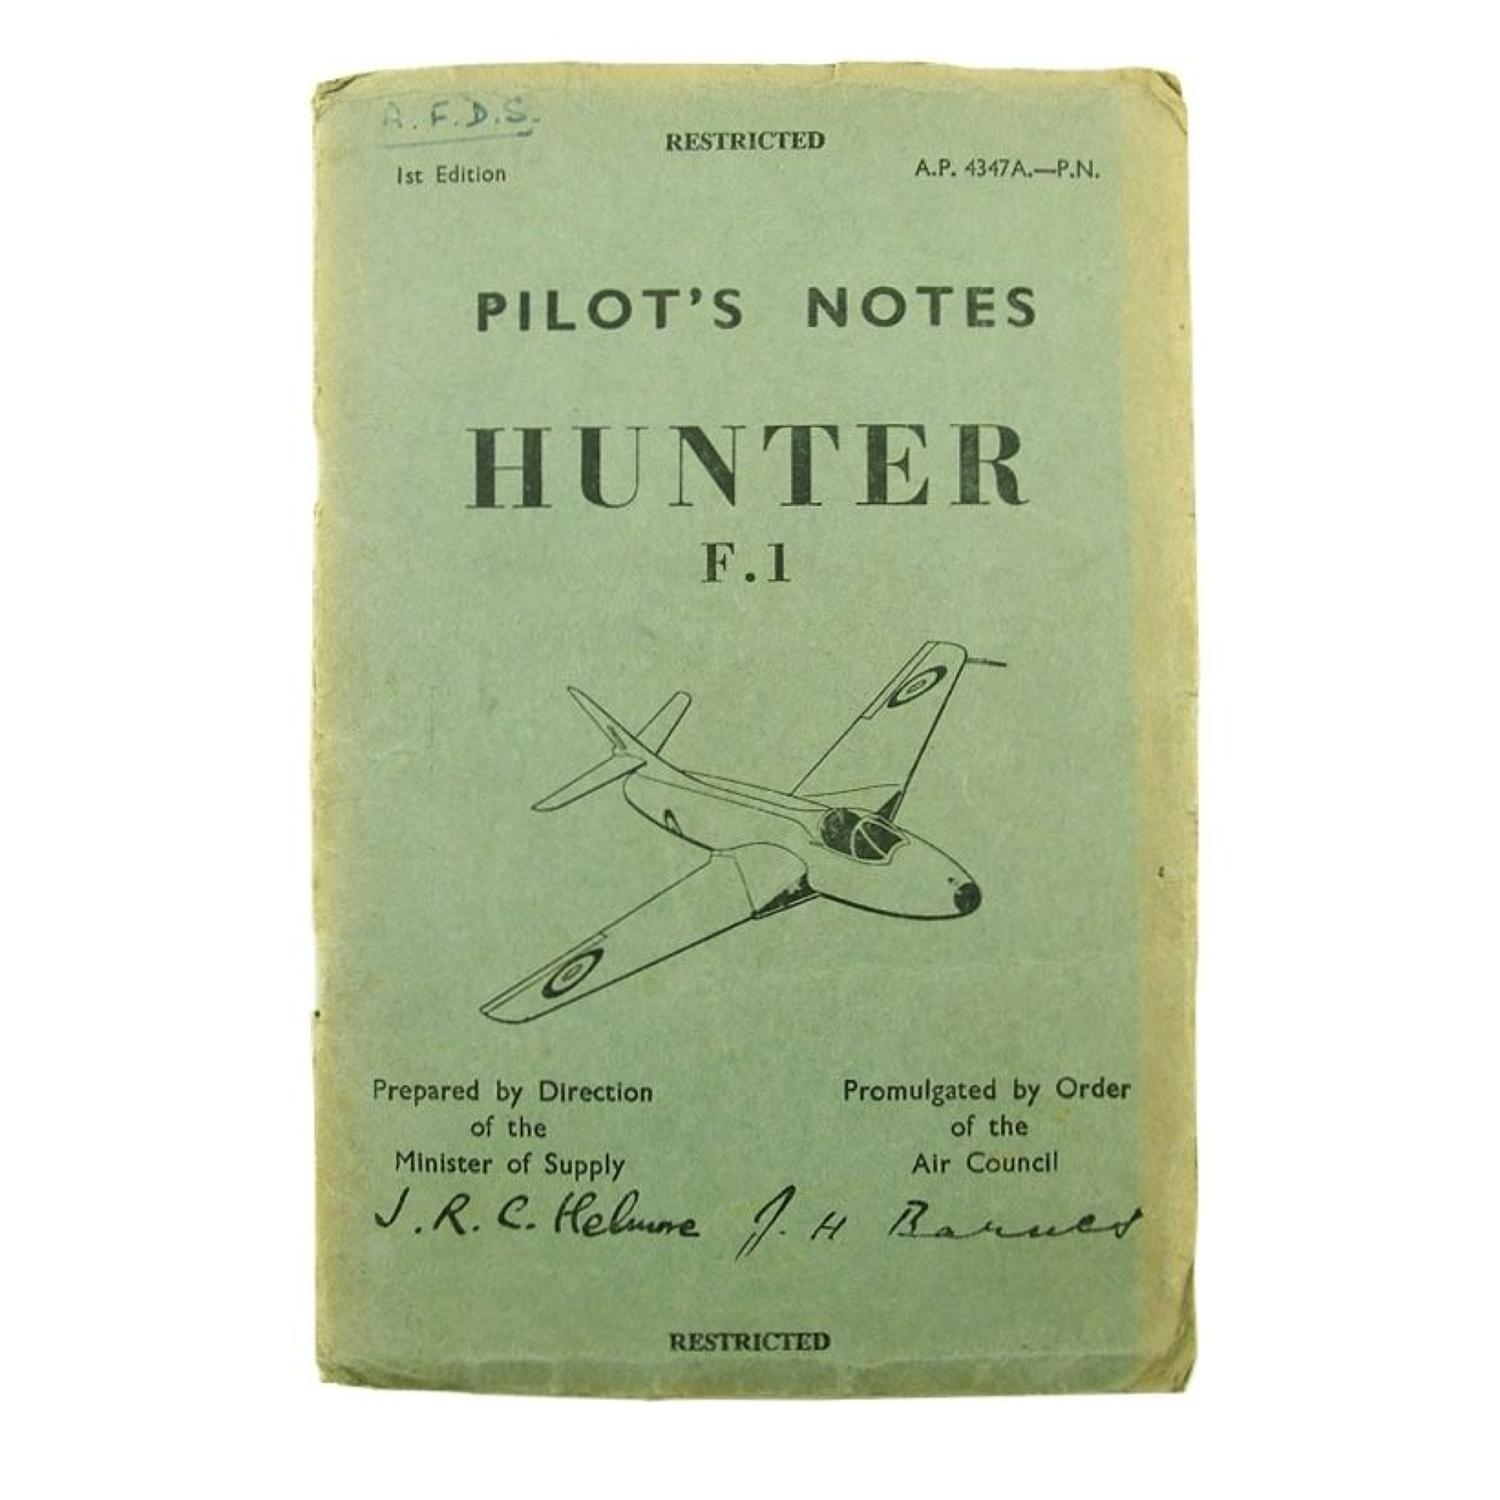 RAF pilot's notes, Hunter F.1